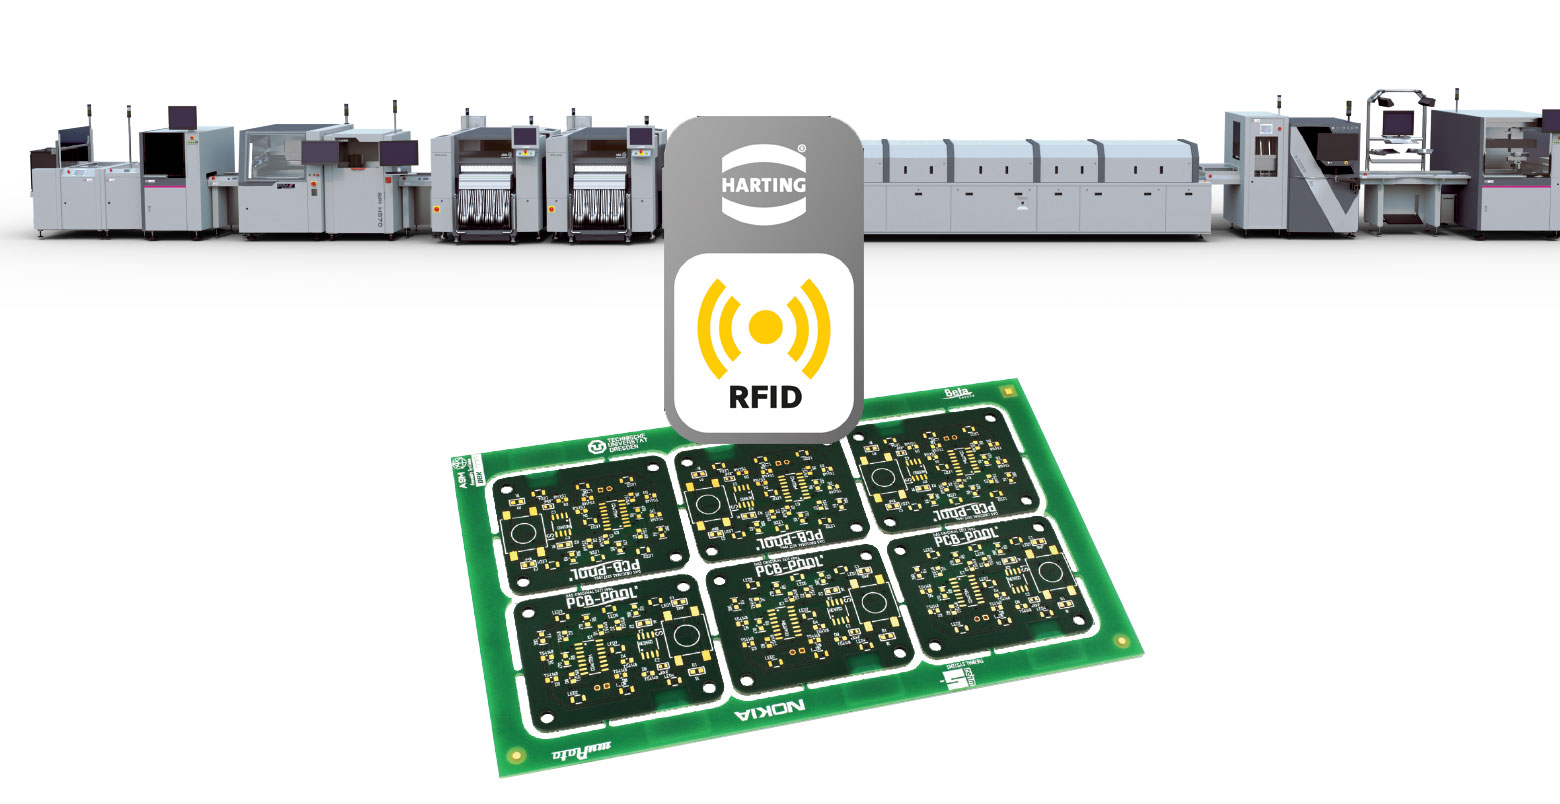 Smt Production Line Detects Pcb Via Rfid Harting Technology Group Assembly Manufacture Electronic Circuit Board China Buy Fr Bestckungsmaschinen